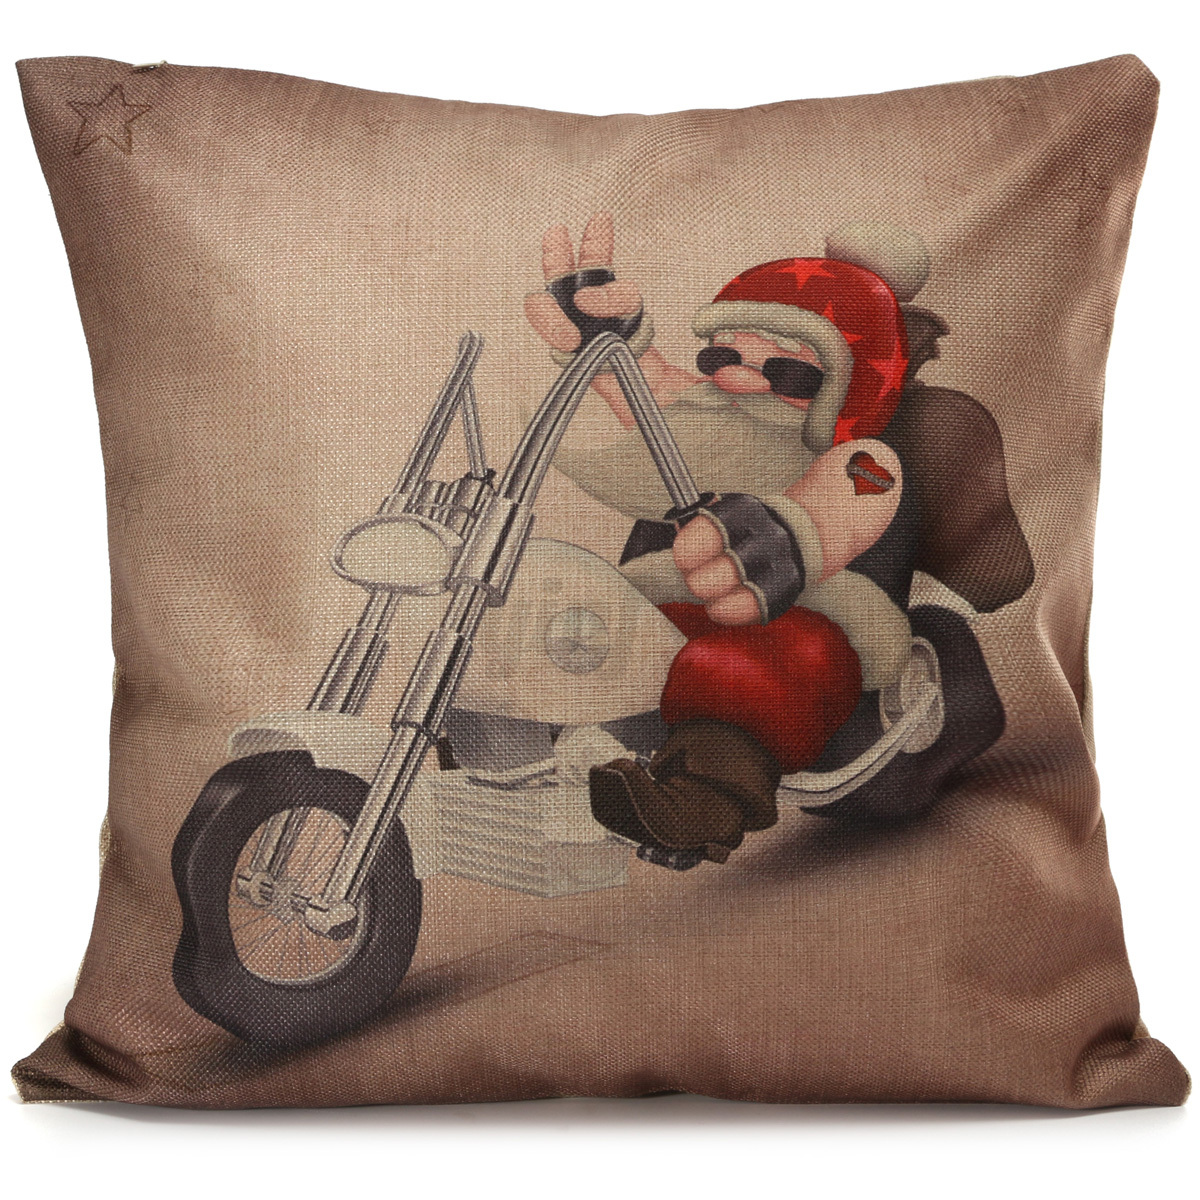 Christmas Decorative Pillow Cases : Cotton Linen XMAS Christmas Cushion Cover Decorative Square Pillow Case Car eBay